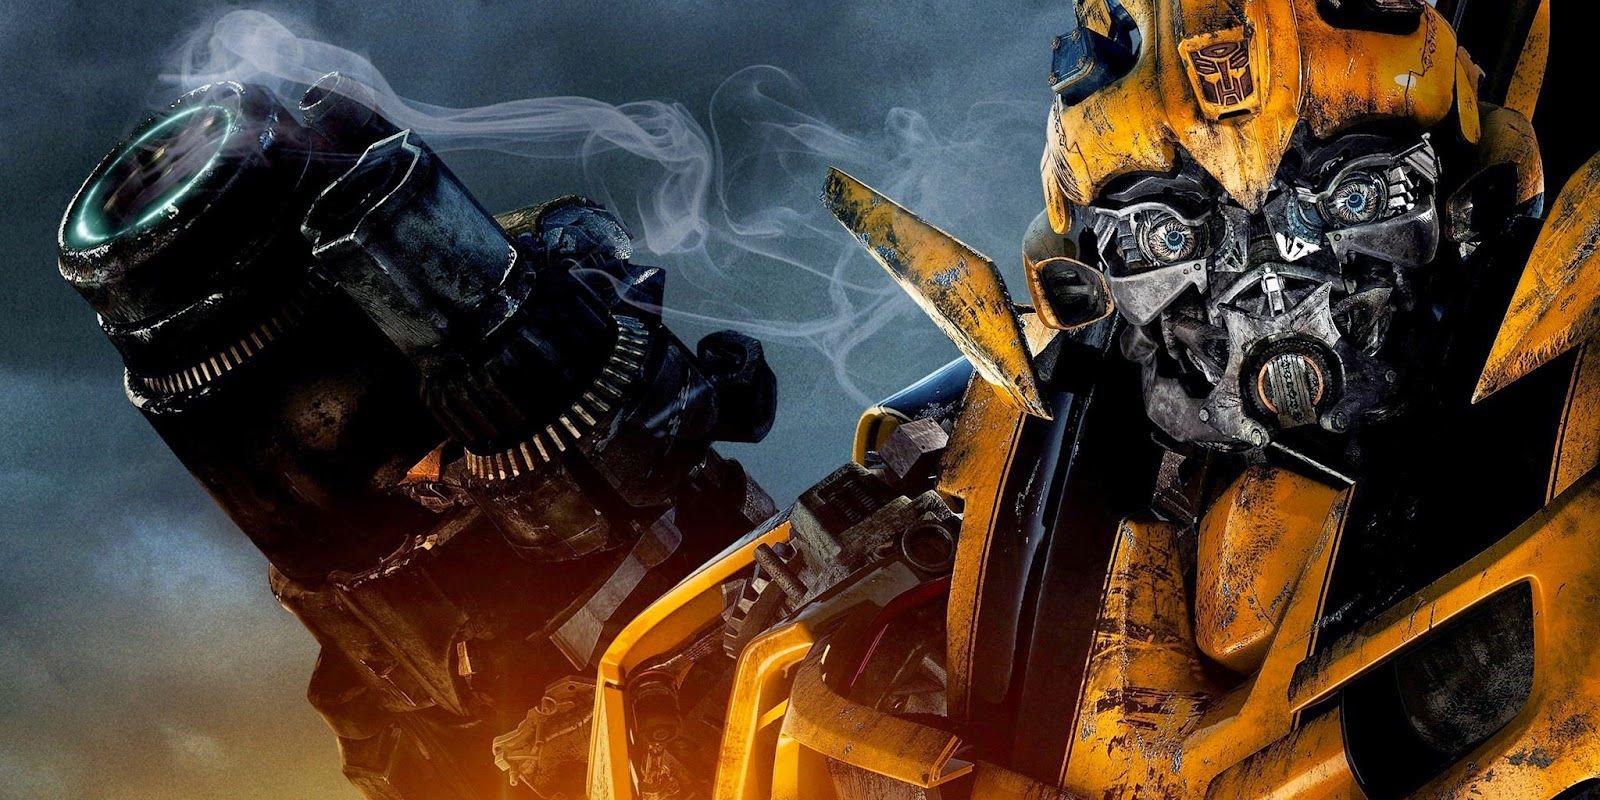 Transformers: 15 Things You Didn't Know About Bumblebee